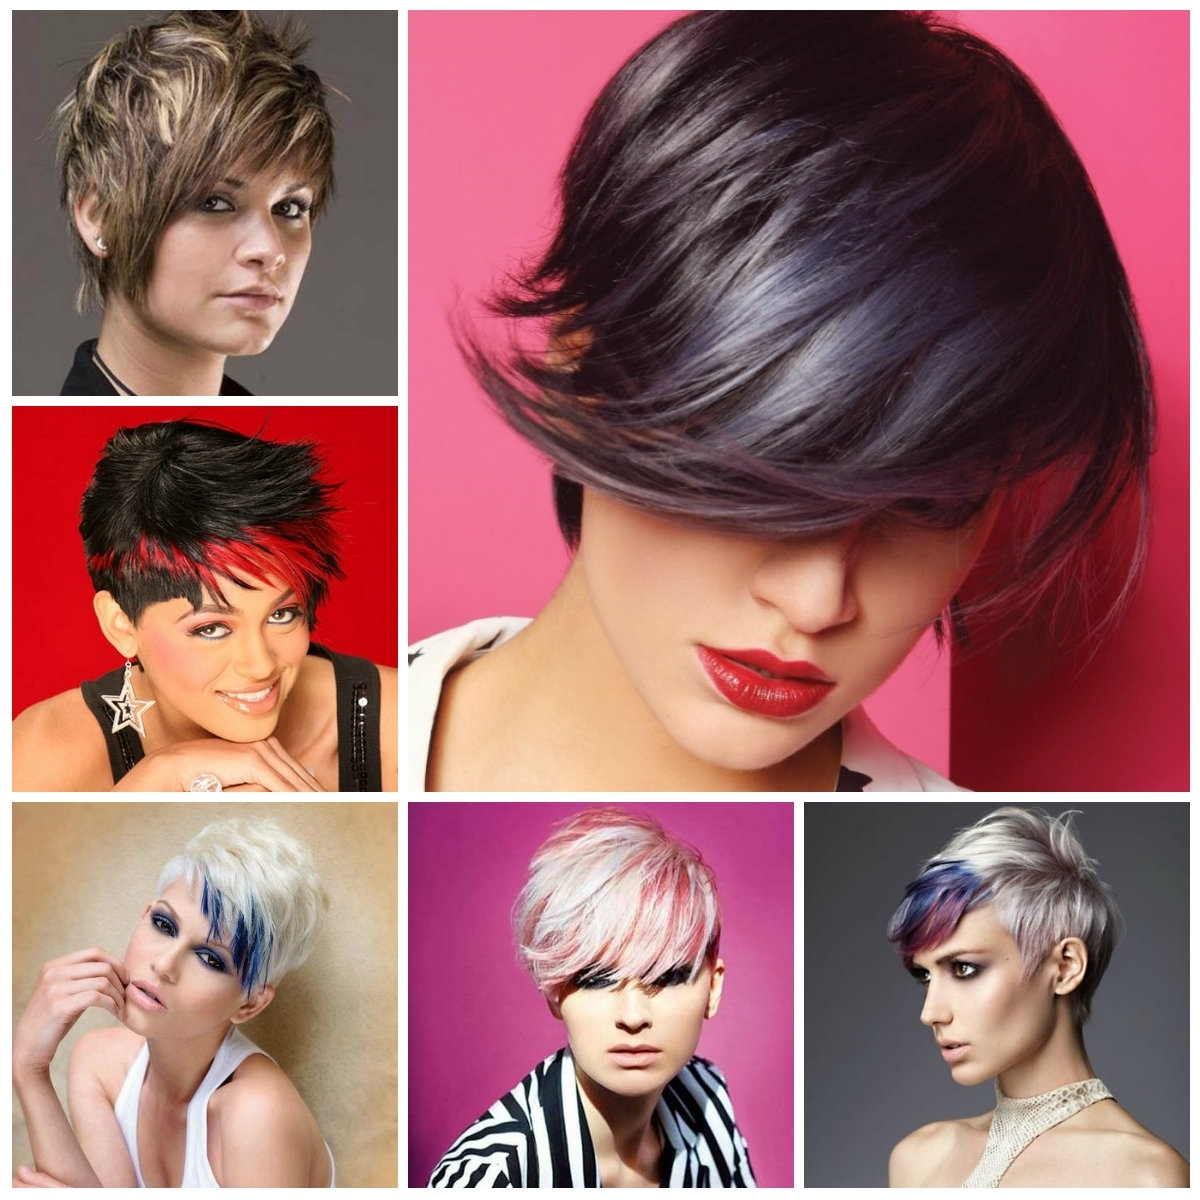 Highlights For Pixie Haircuts 2016 (1200×1200) | Hair Ideas Inside Most Current Pixie Hairstyles With Highlights (View 4 of 15)